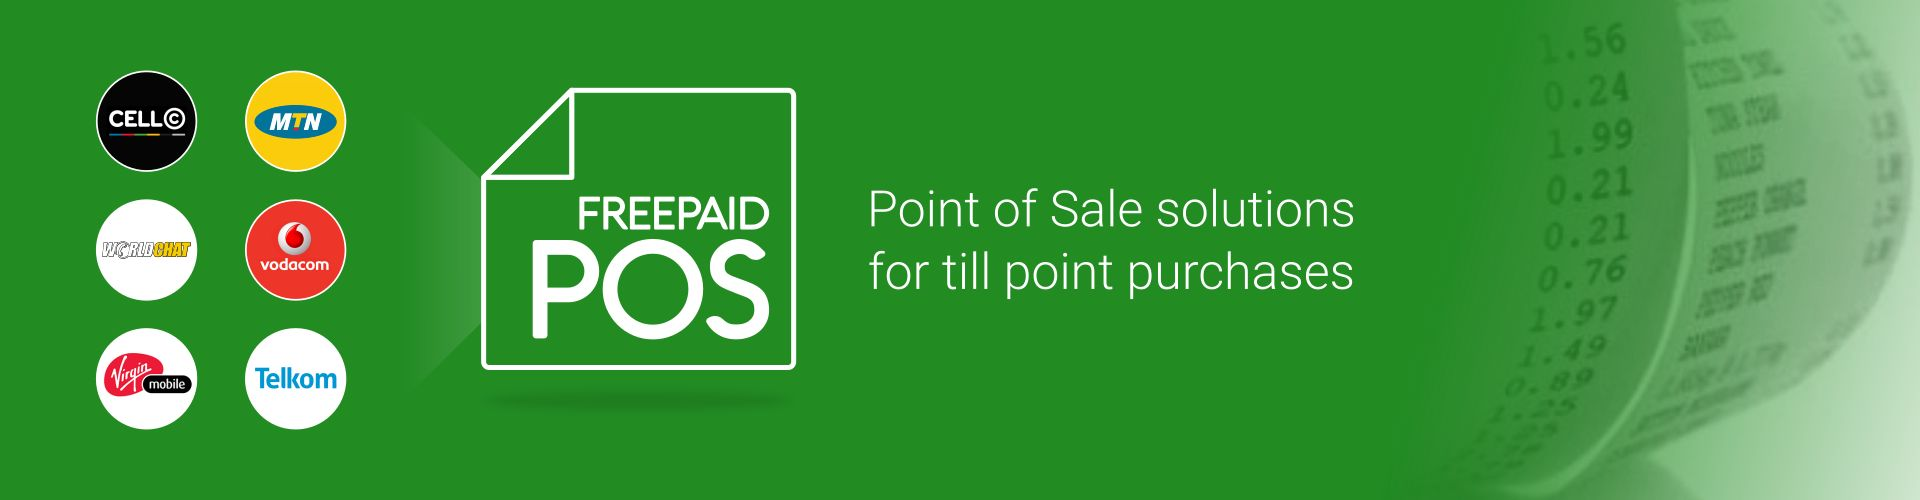 Point of Sale Airtime